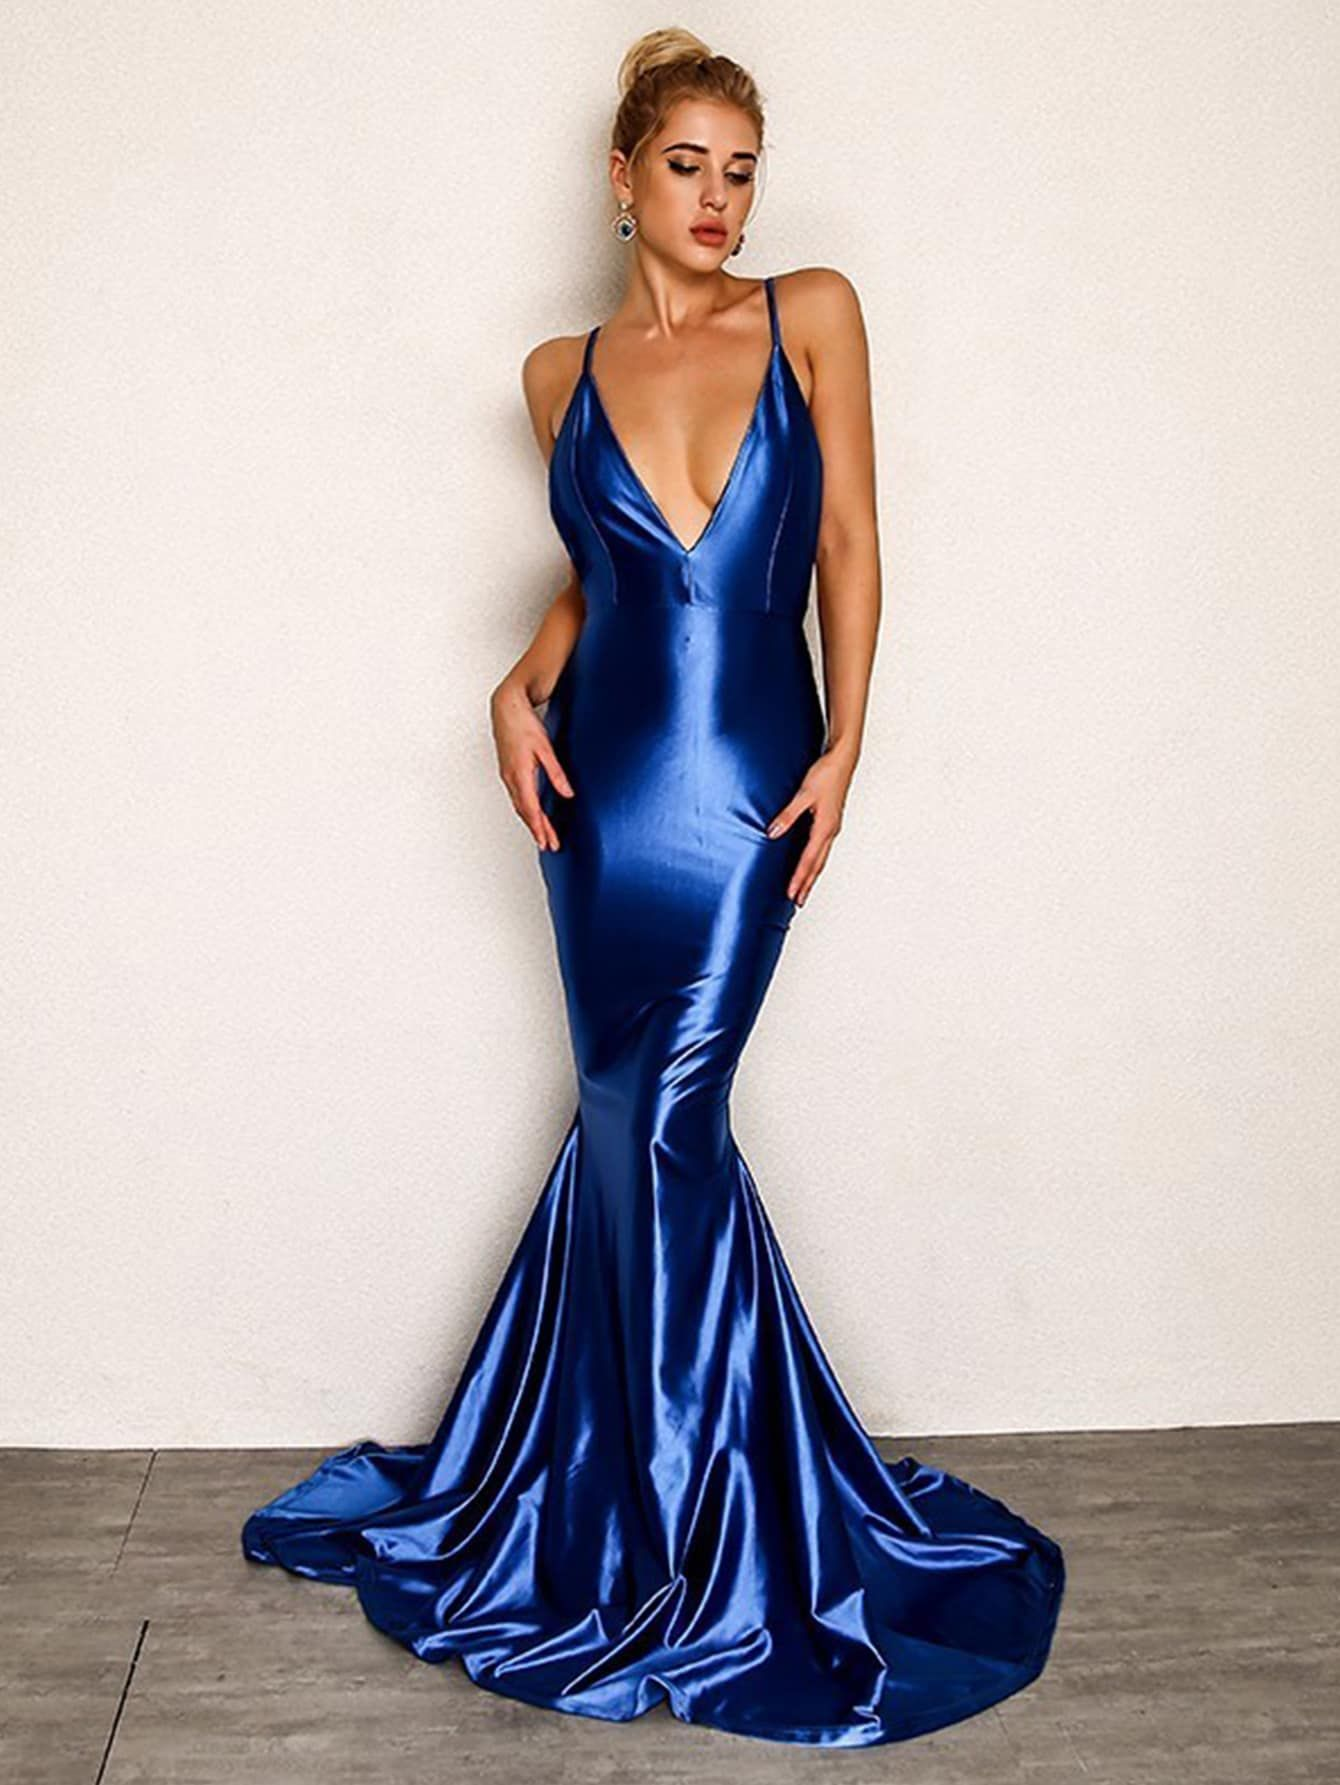 a28cb5c51956 Party Slip Backless and Ruched Plain Bodycon Mermaid Spaghetti Strap  Sleeveless High Waist Blue Maxi Length Joyfunear Open Back Fishtail  Plunging Cami Dress